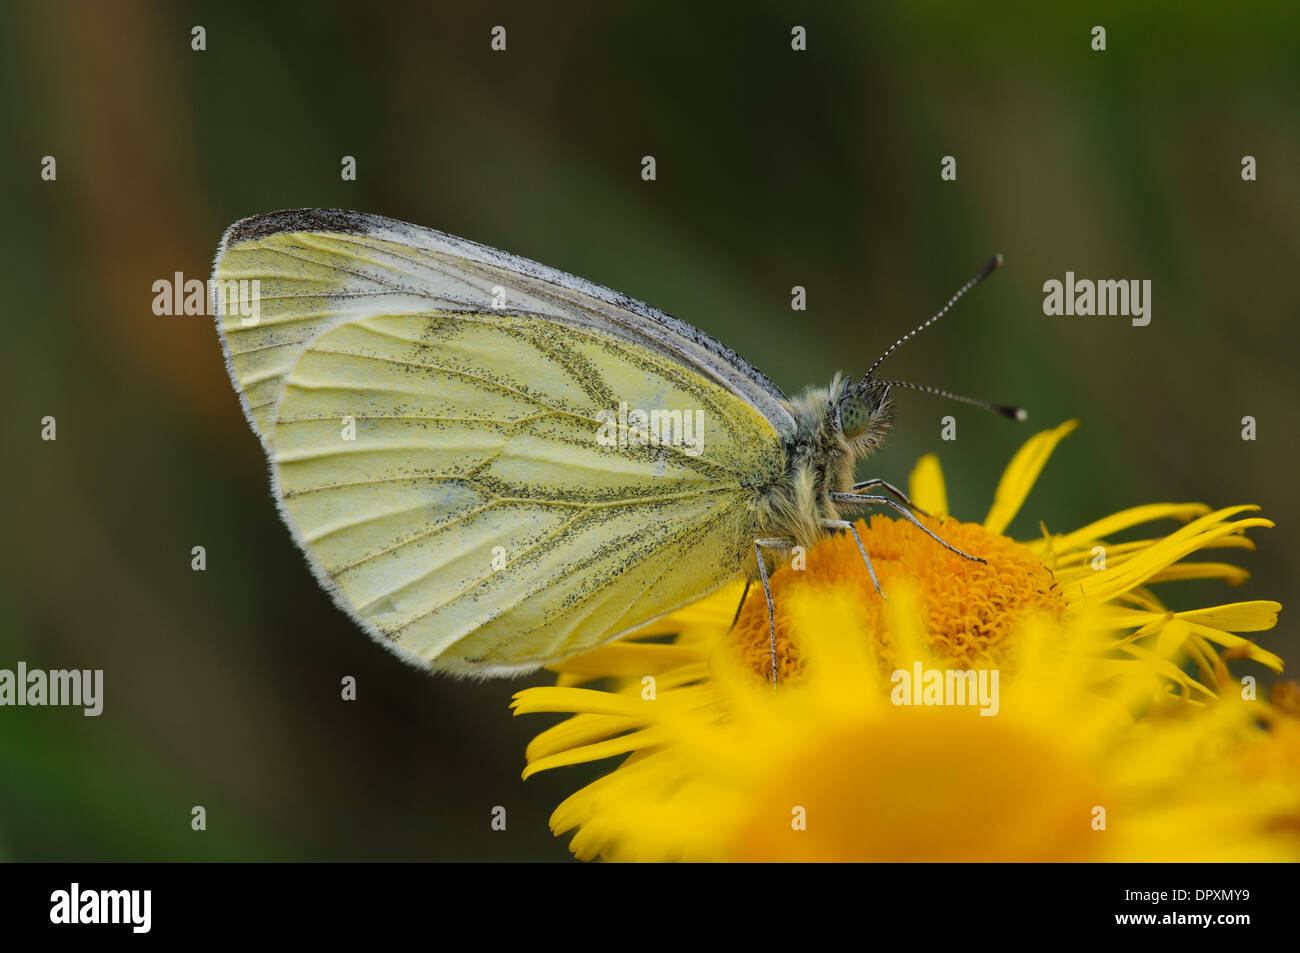 Green-veined White Butterfly (Pieris napi), close-up on the head of an adult perched on a flower of common fleabane - Stock Image